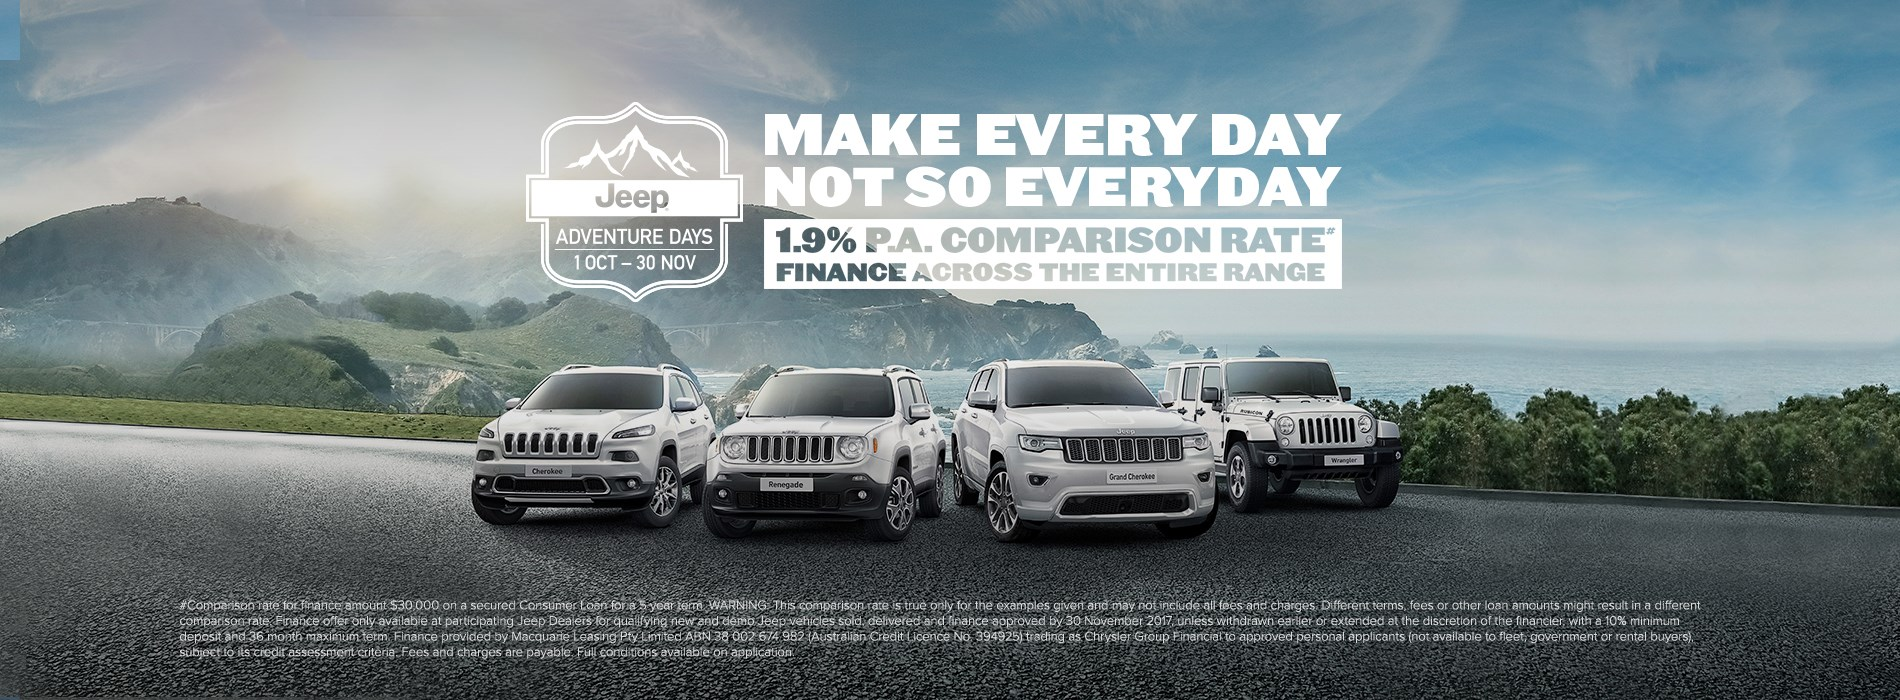 Jeep Adventure Days 1.9% P.A. Comparison Rate Offer